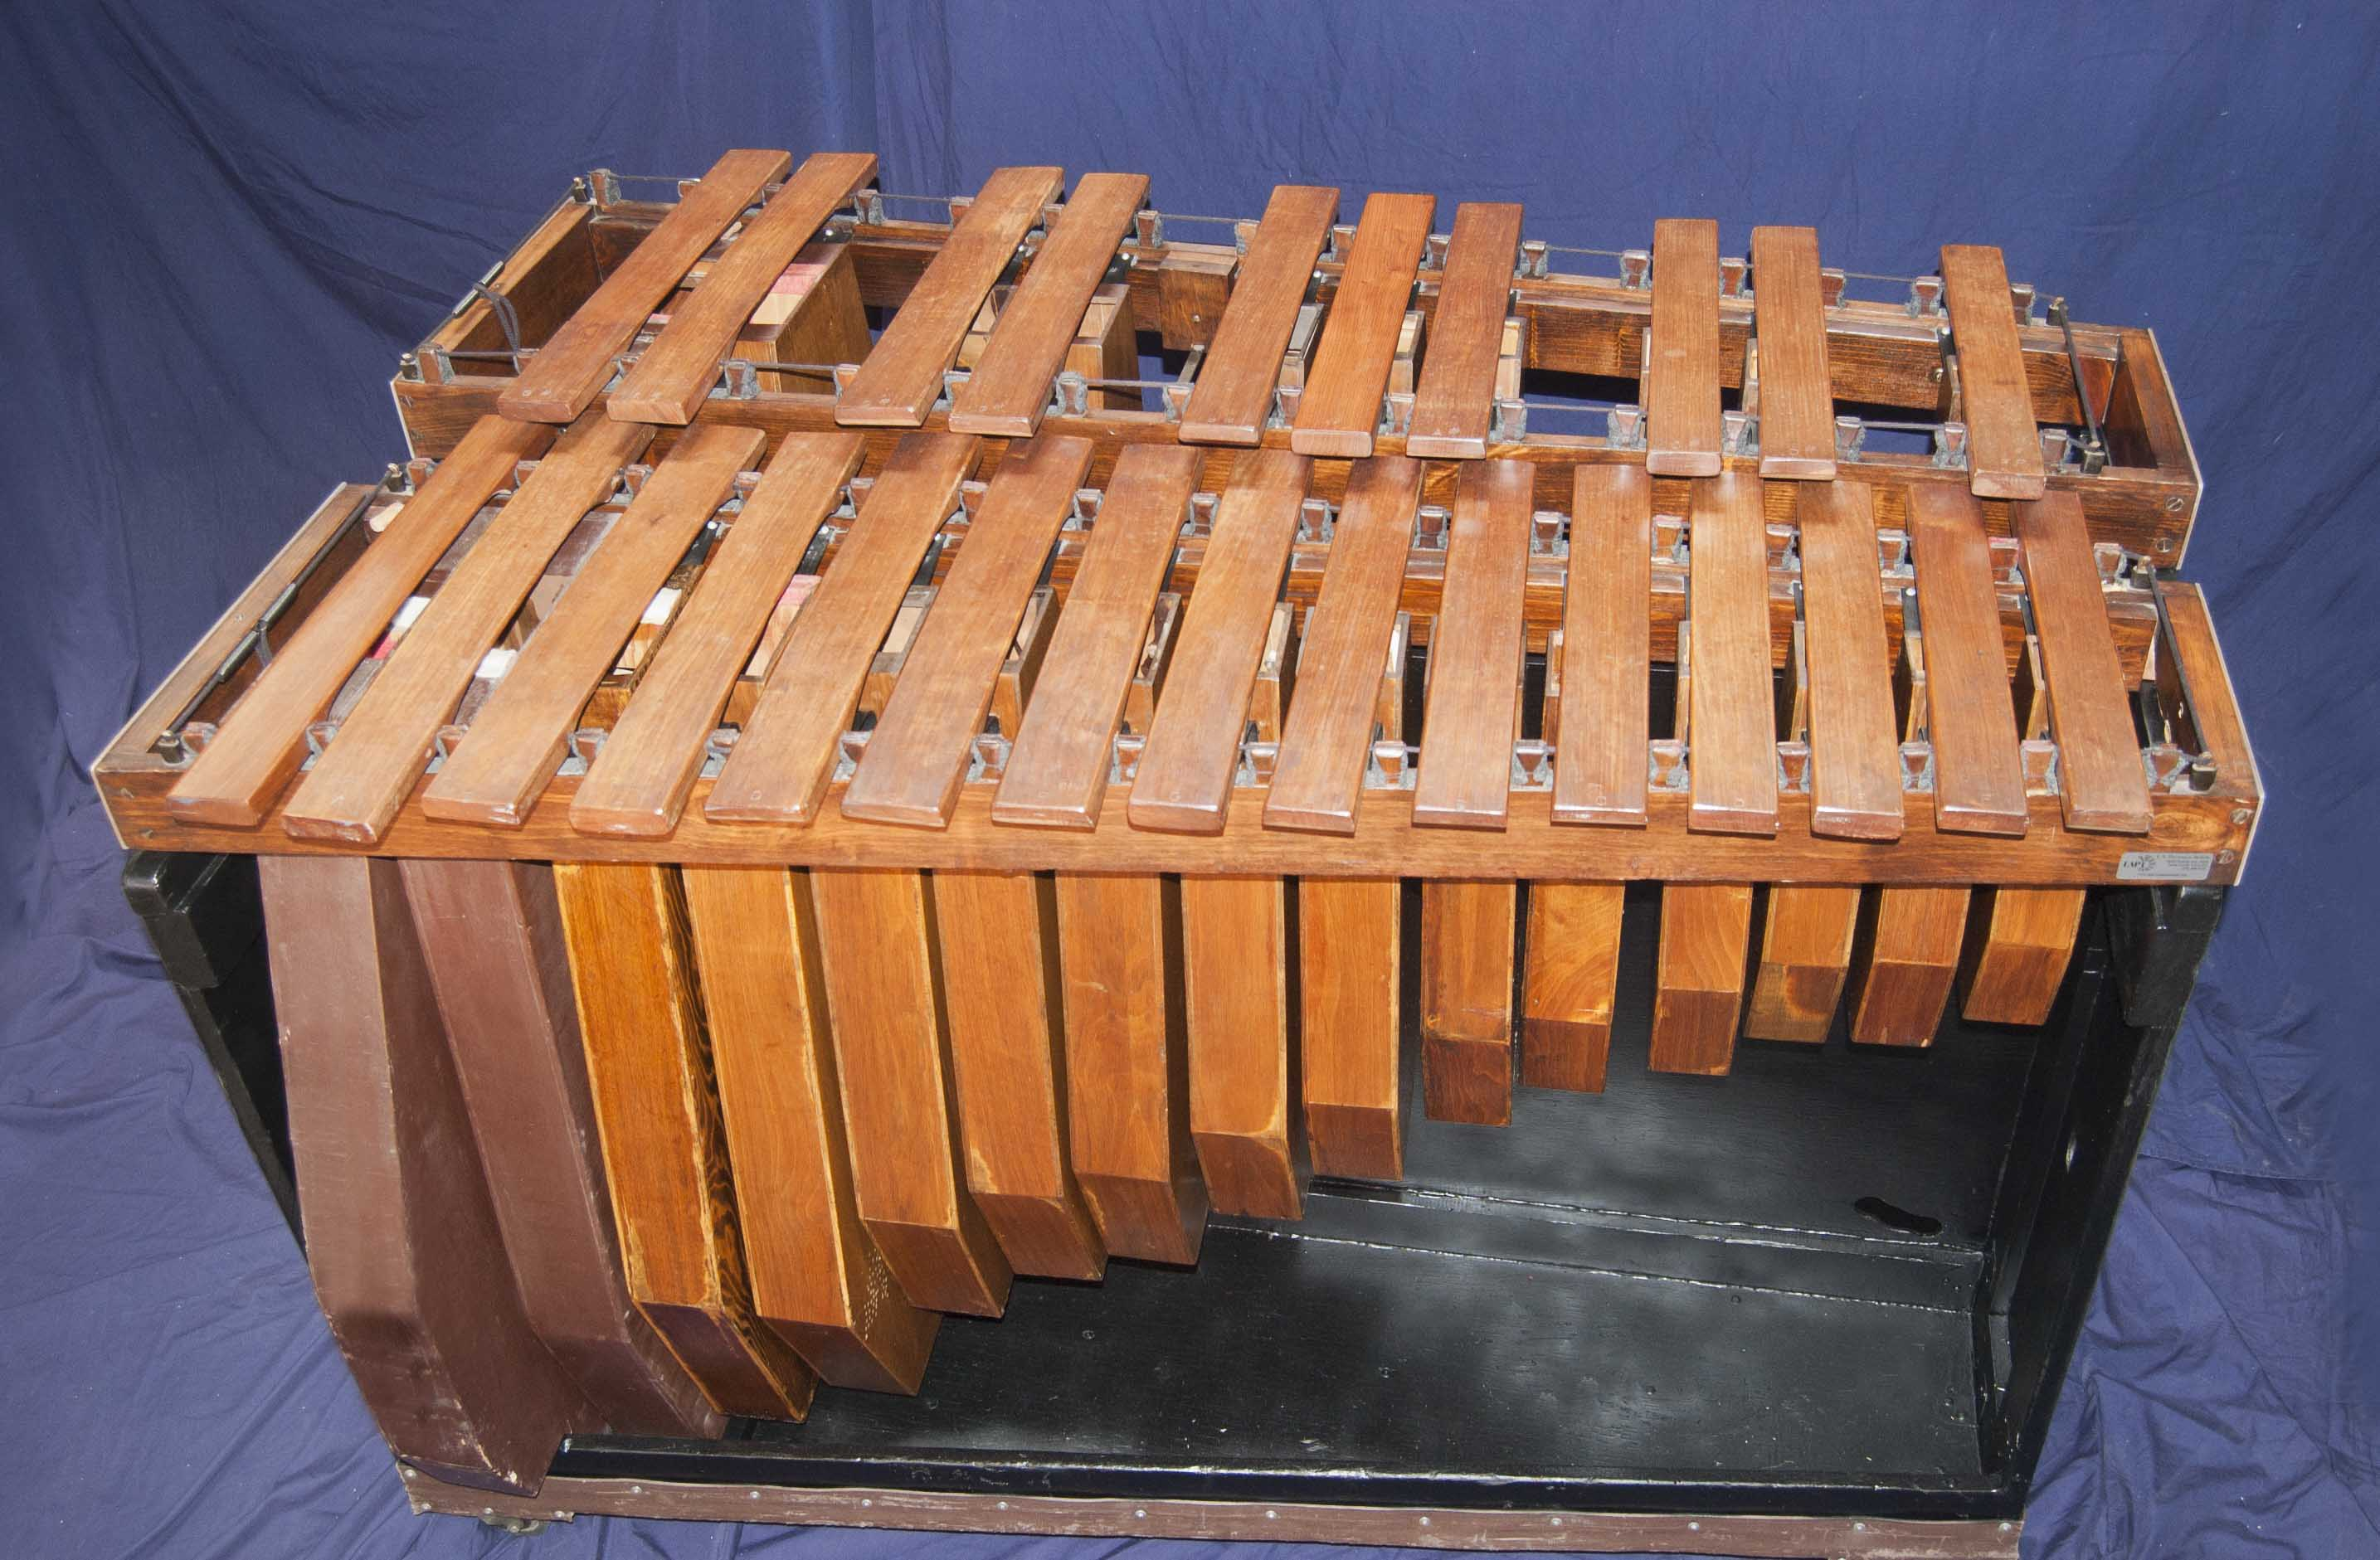 Contra Bass Marimba made of wood with two levels, one for whole tones and one for half tones.